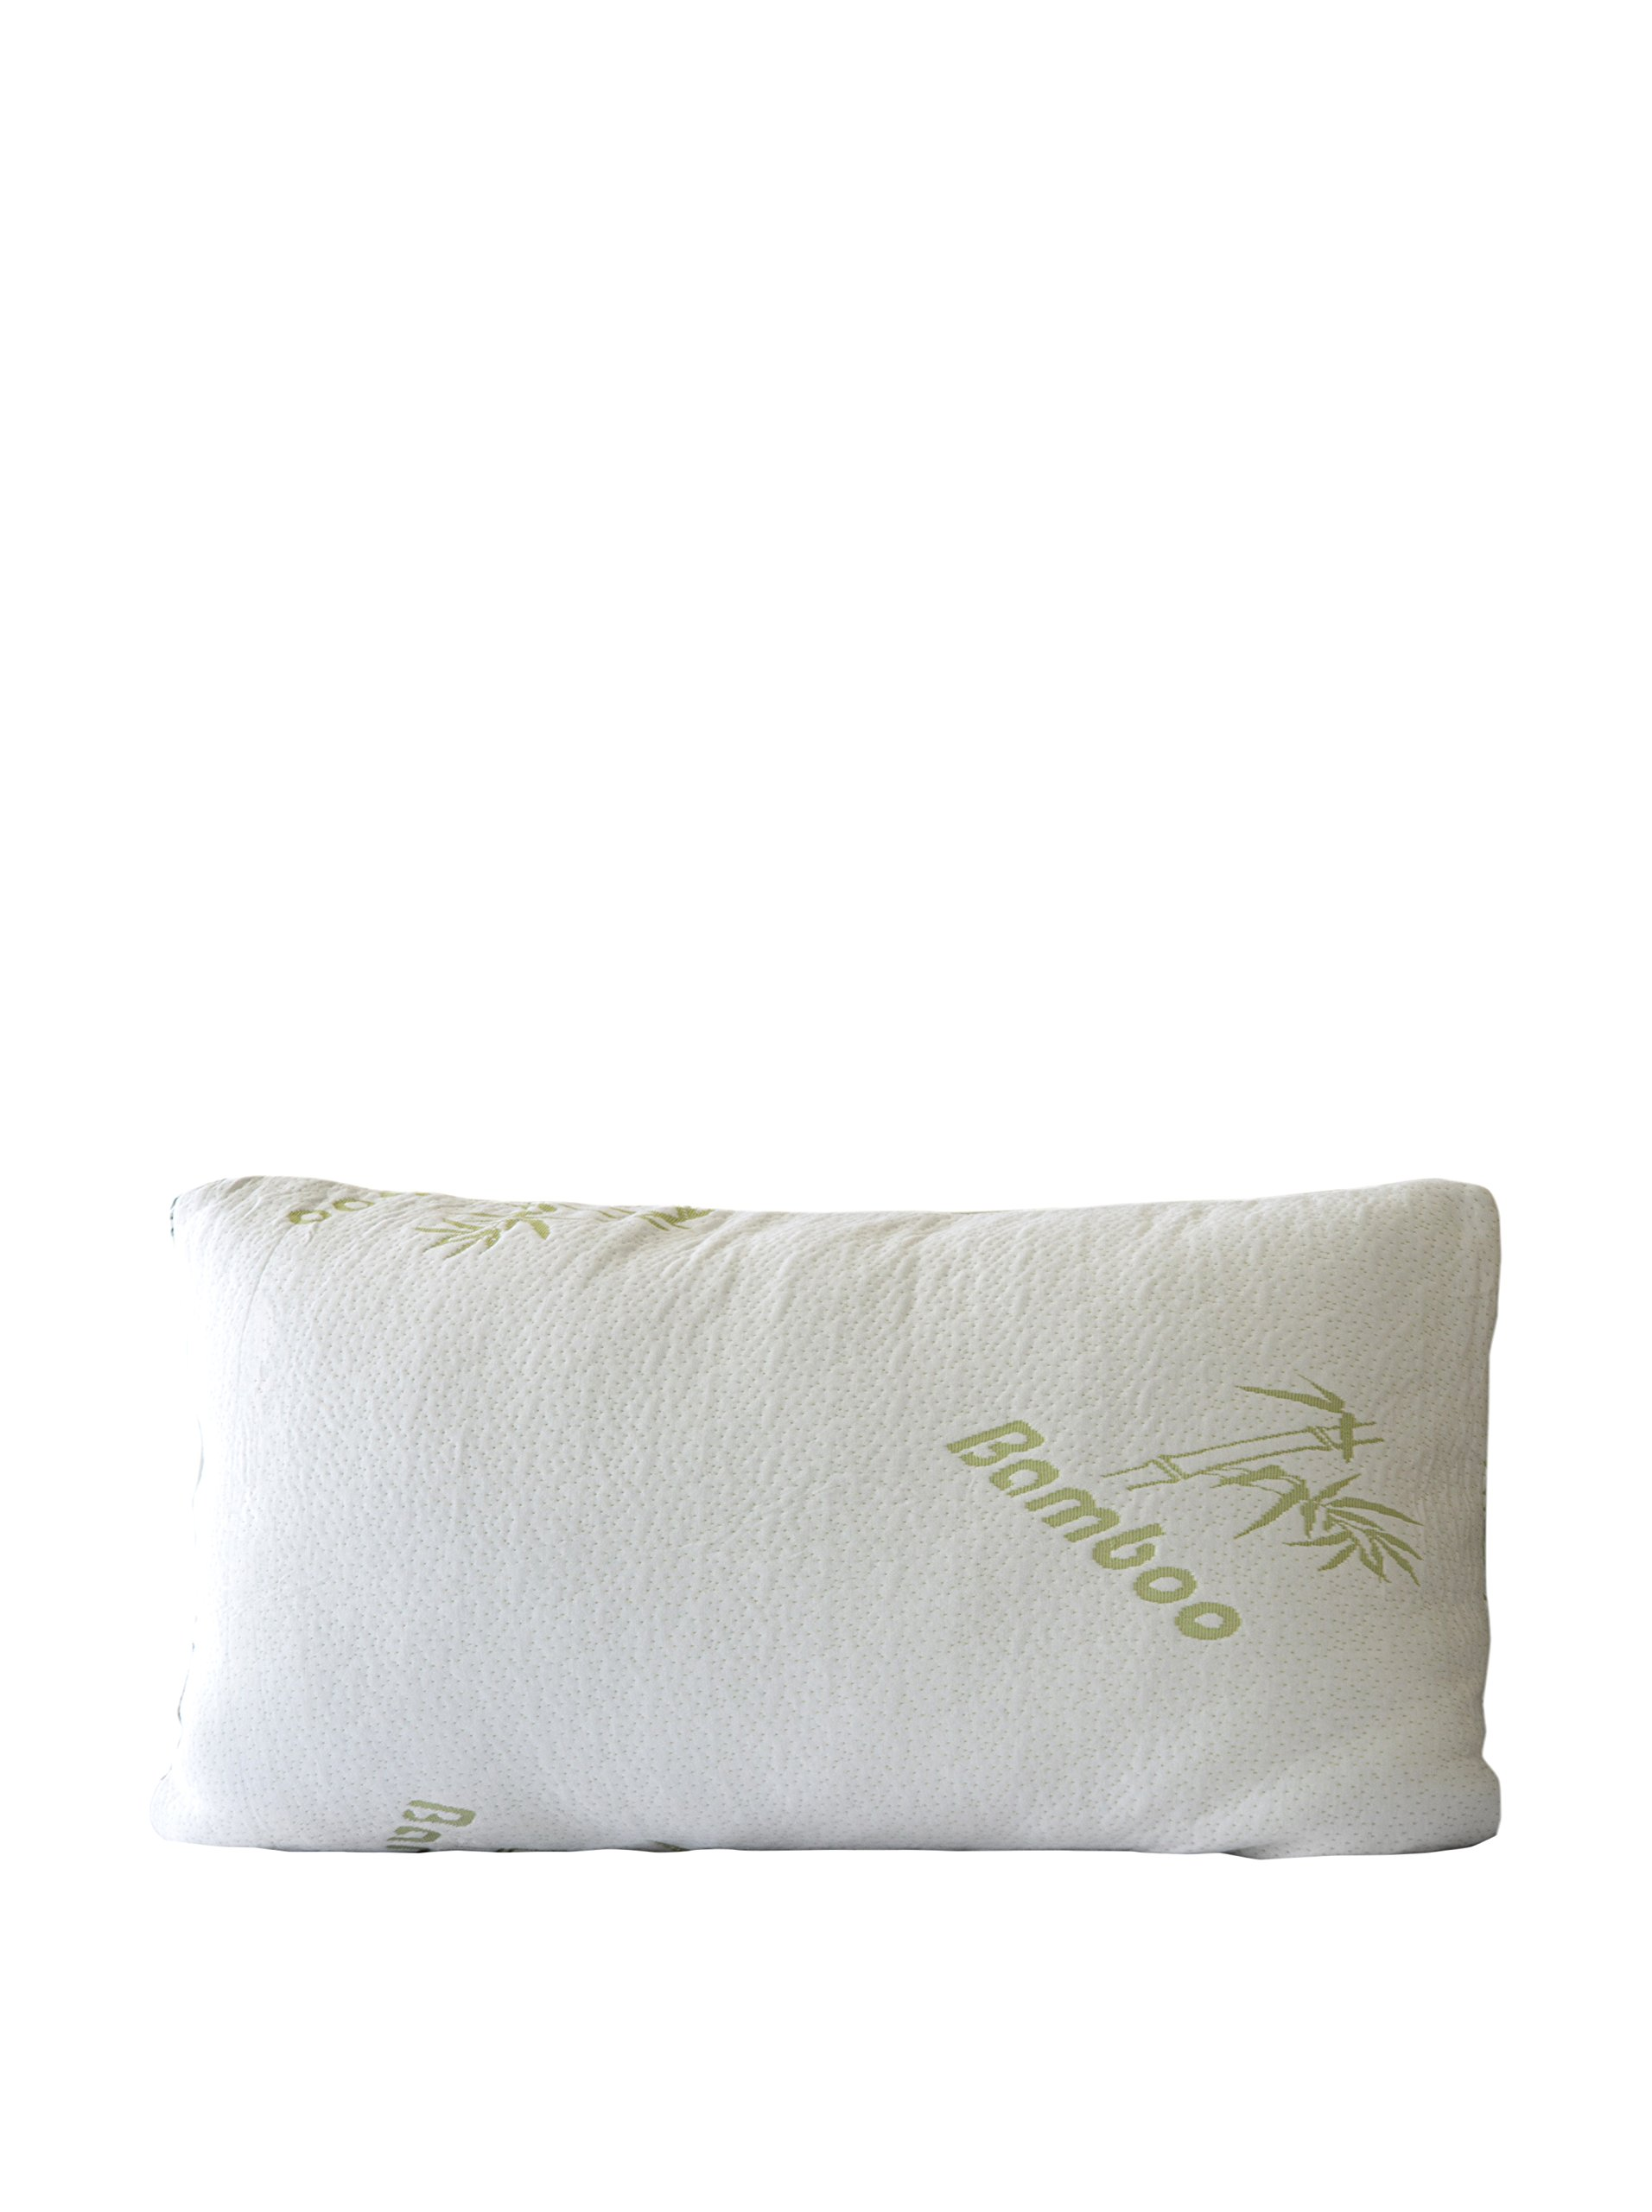 set of p hotel memory comforter comfort foam s king queen cover cool bamboo stay pillow picture covered